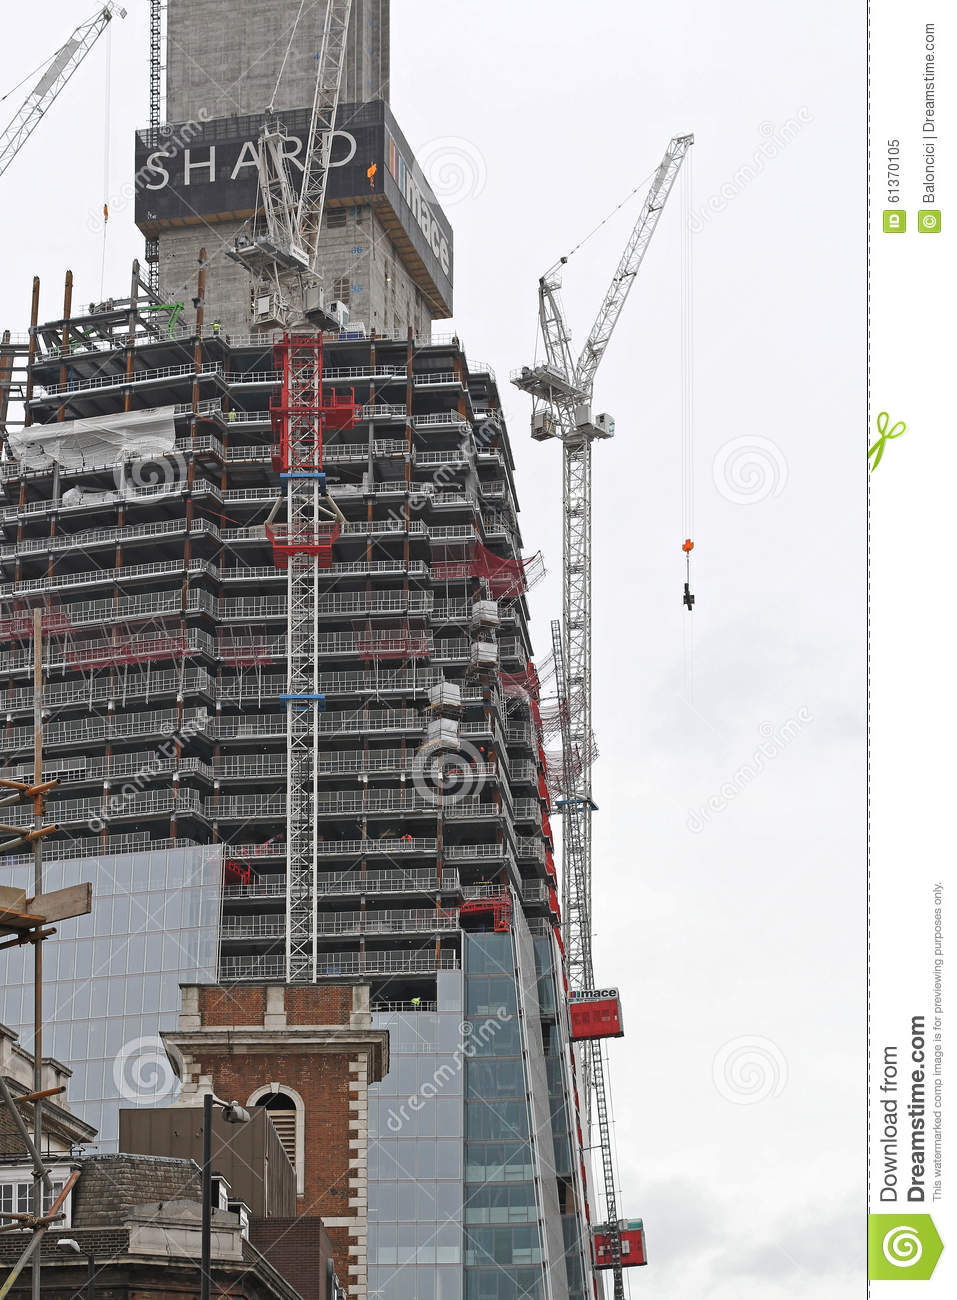 Shard Construction editorial image  Image of mace, shard